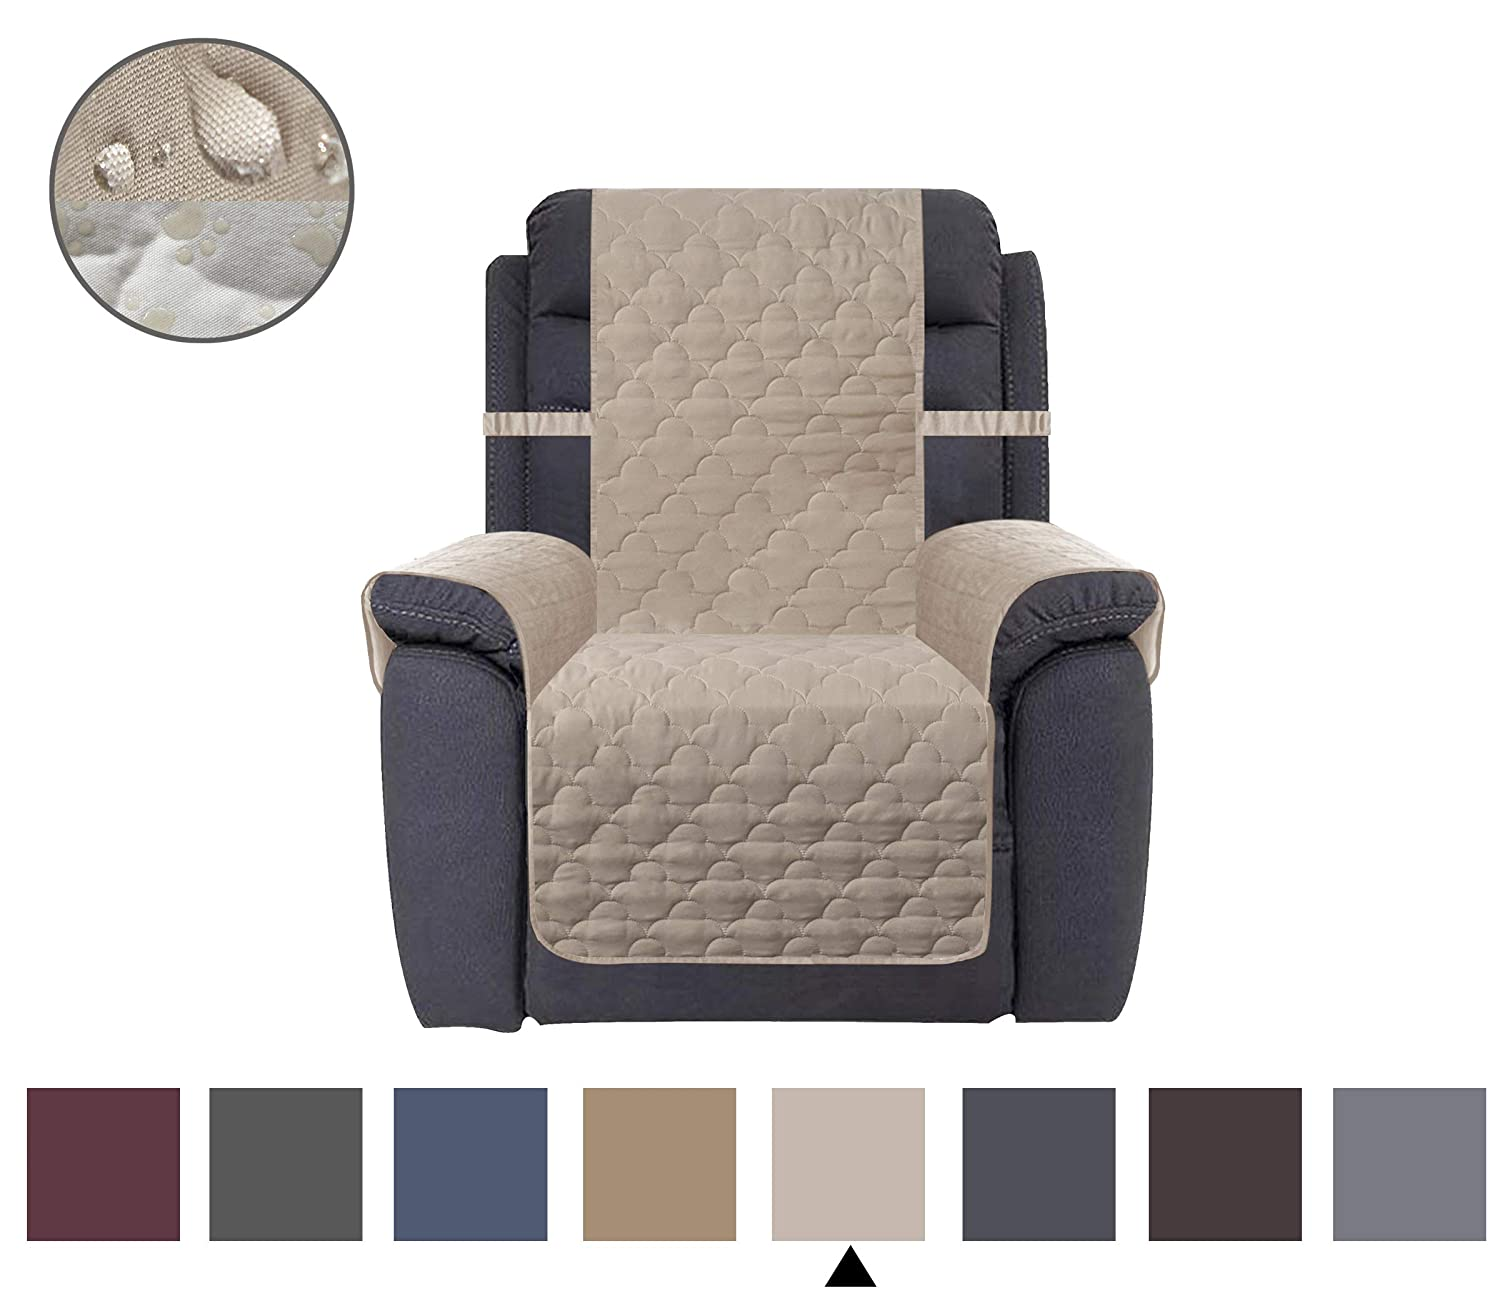 CHHKON Waterproof Nonslip Recliner Cover Stay in Place, Dog Couch Chair Cover Furniture Protector, Ideal Loveseat Slipcovers for Pets and Kids